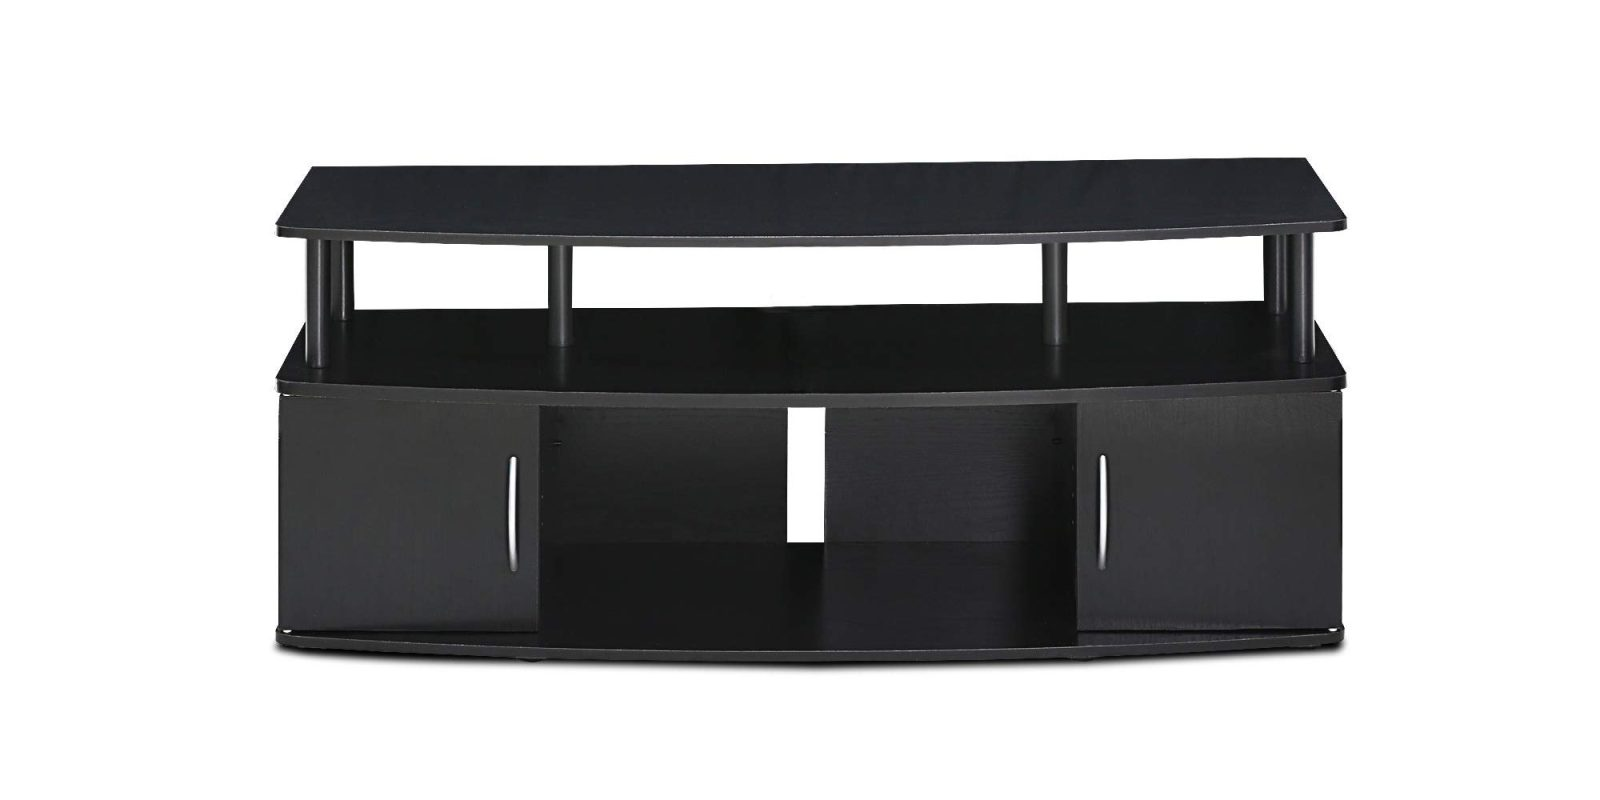 At $36.50, this TV stand sports easy assembly and is 40% off